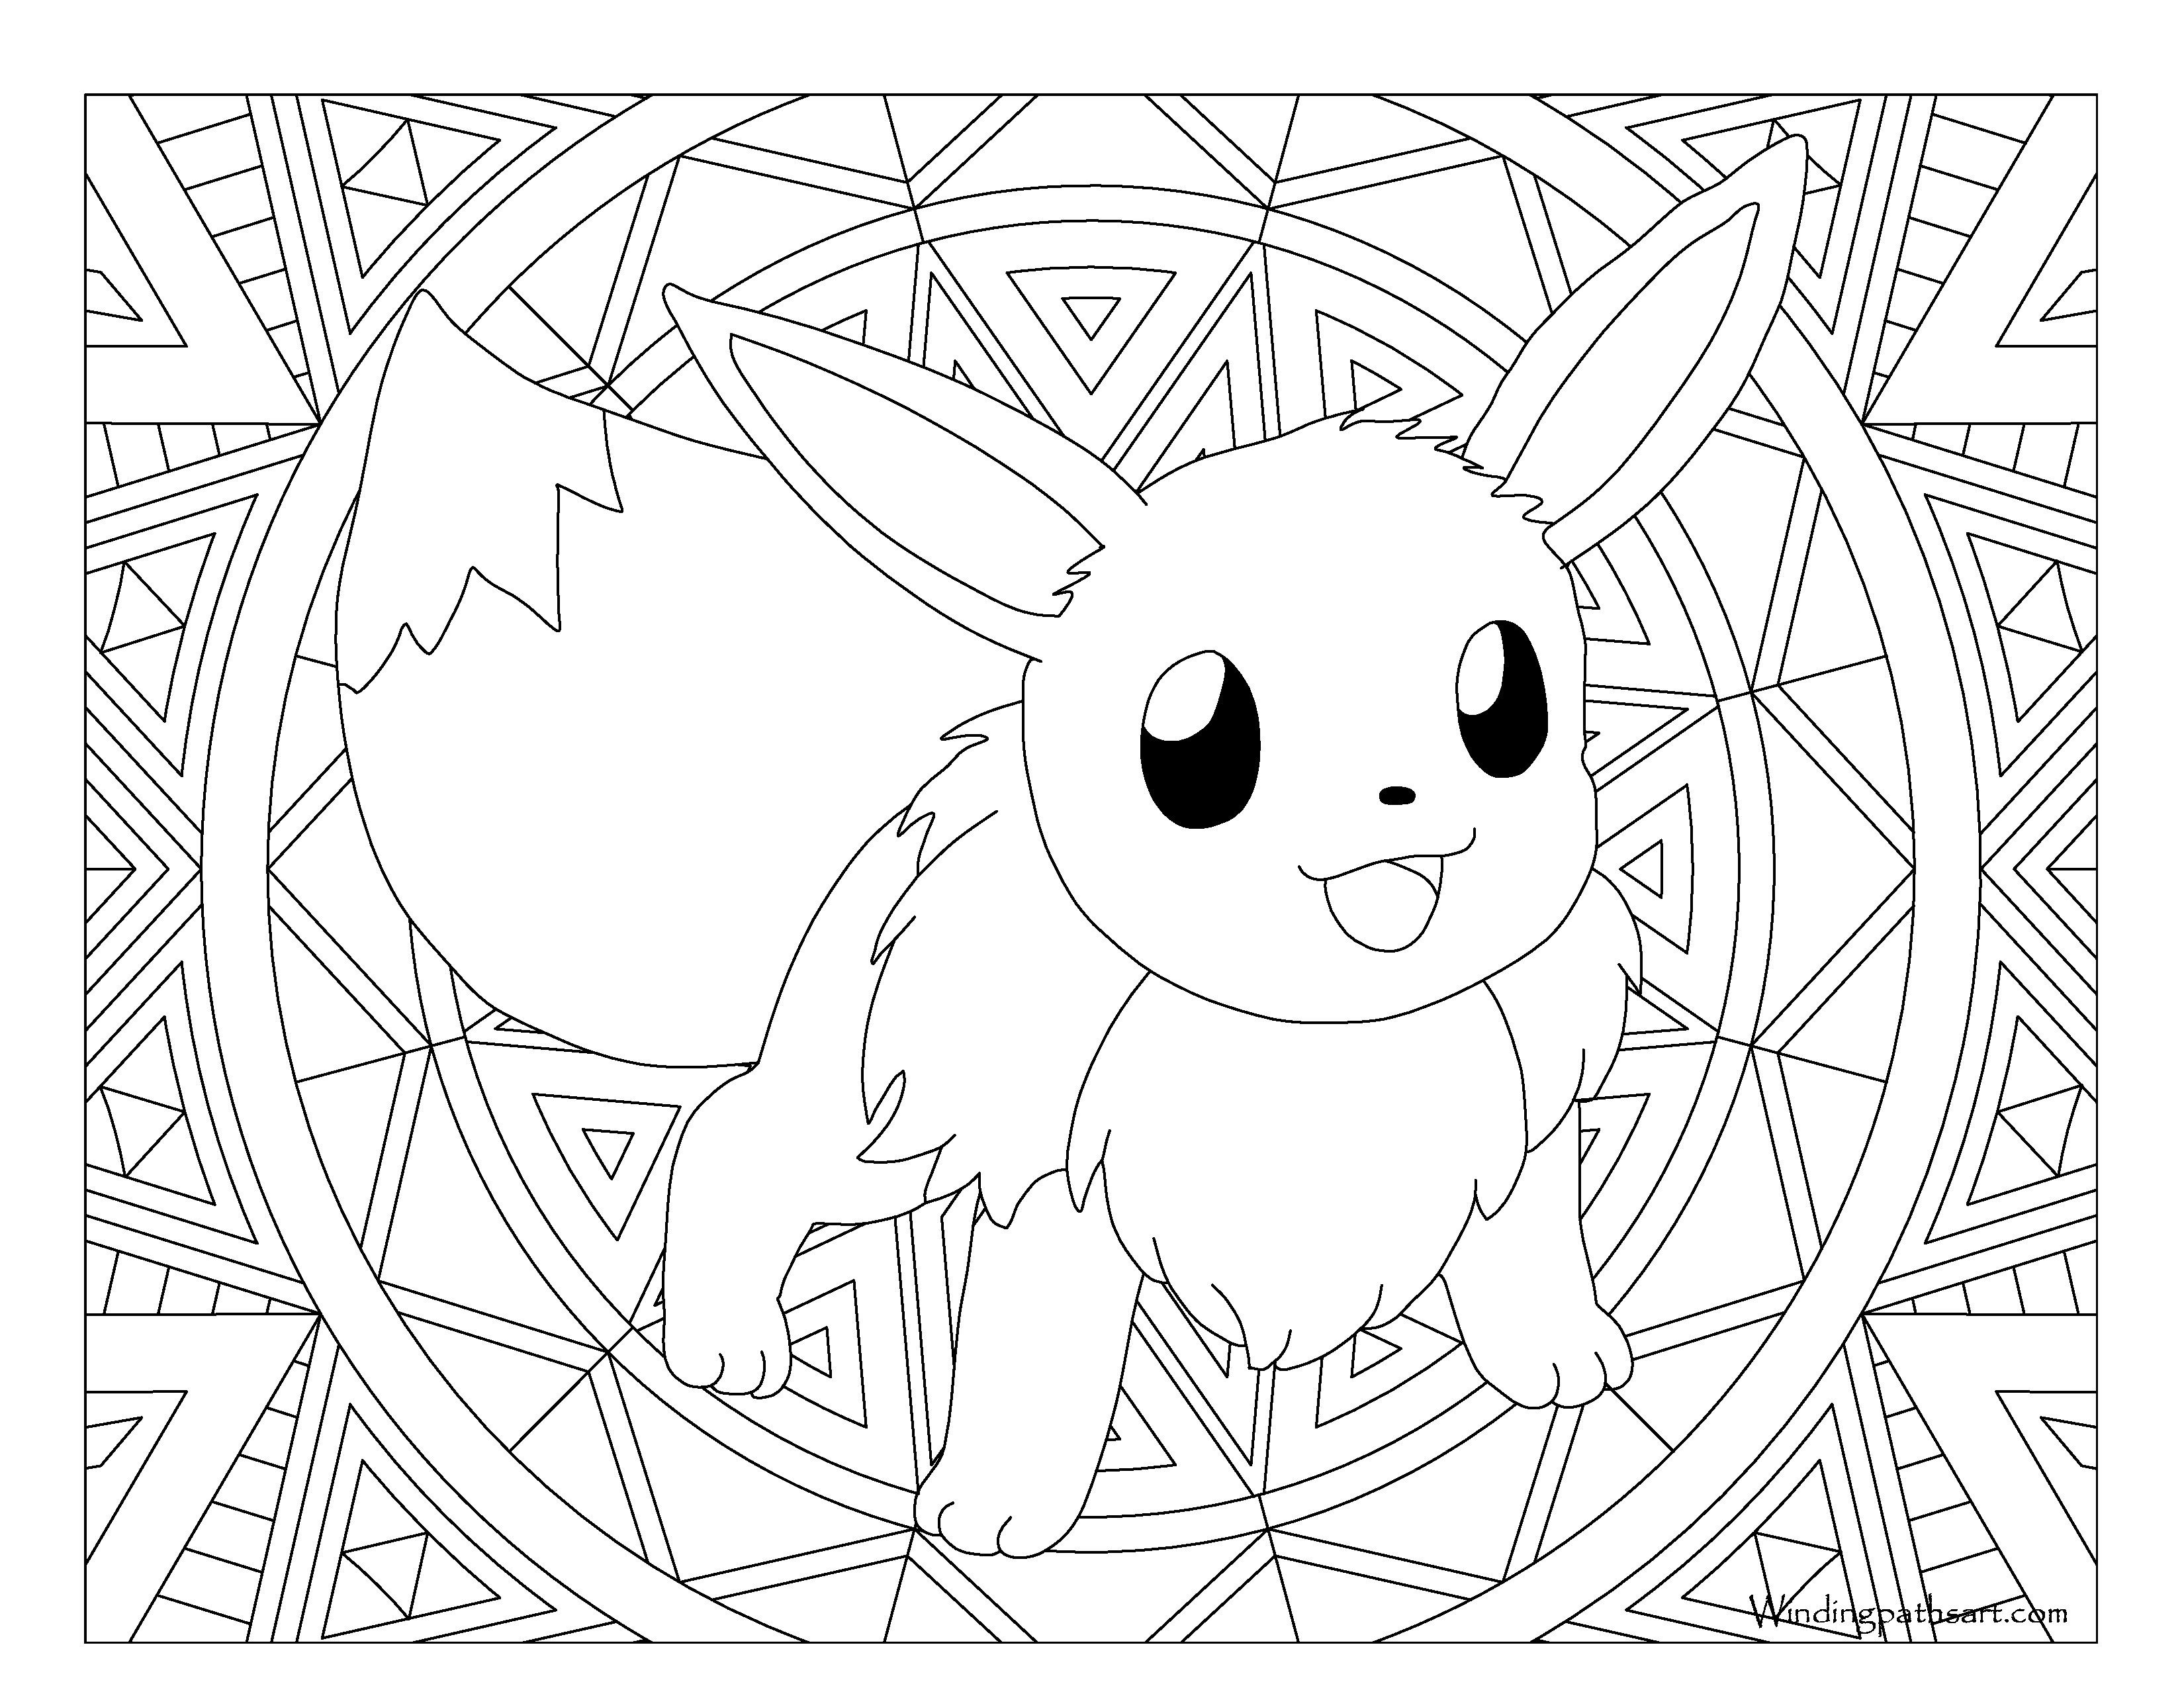 Elegant Image Of Eevee Evolutions Coloring Pages Davemelillo Com Pokemon Coloring Sheets Pikachu Coloring Page Pokemon Coloring Pages